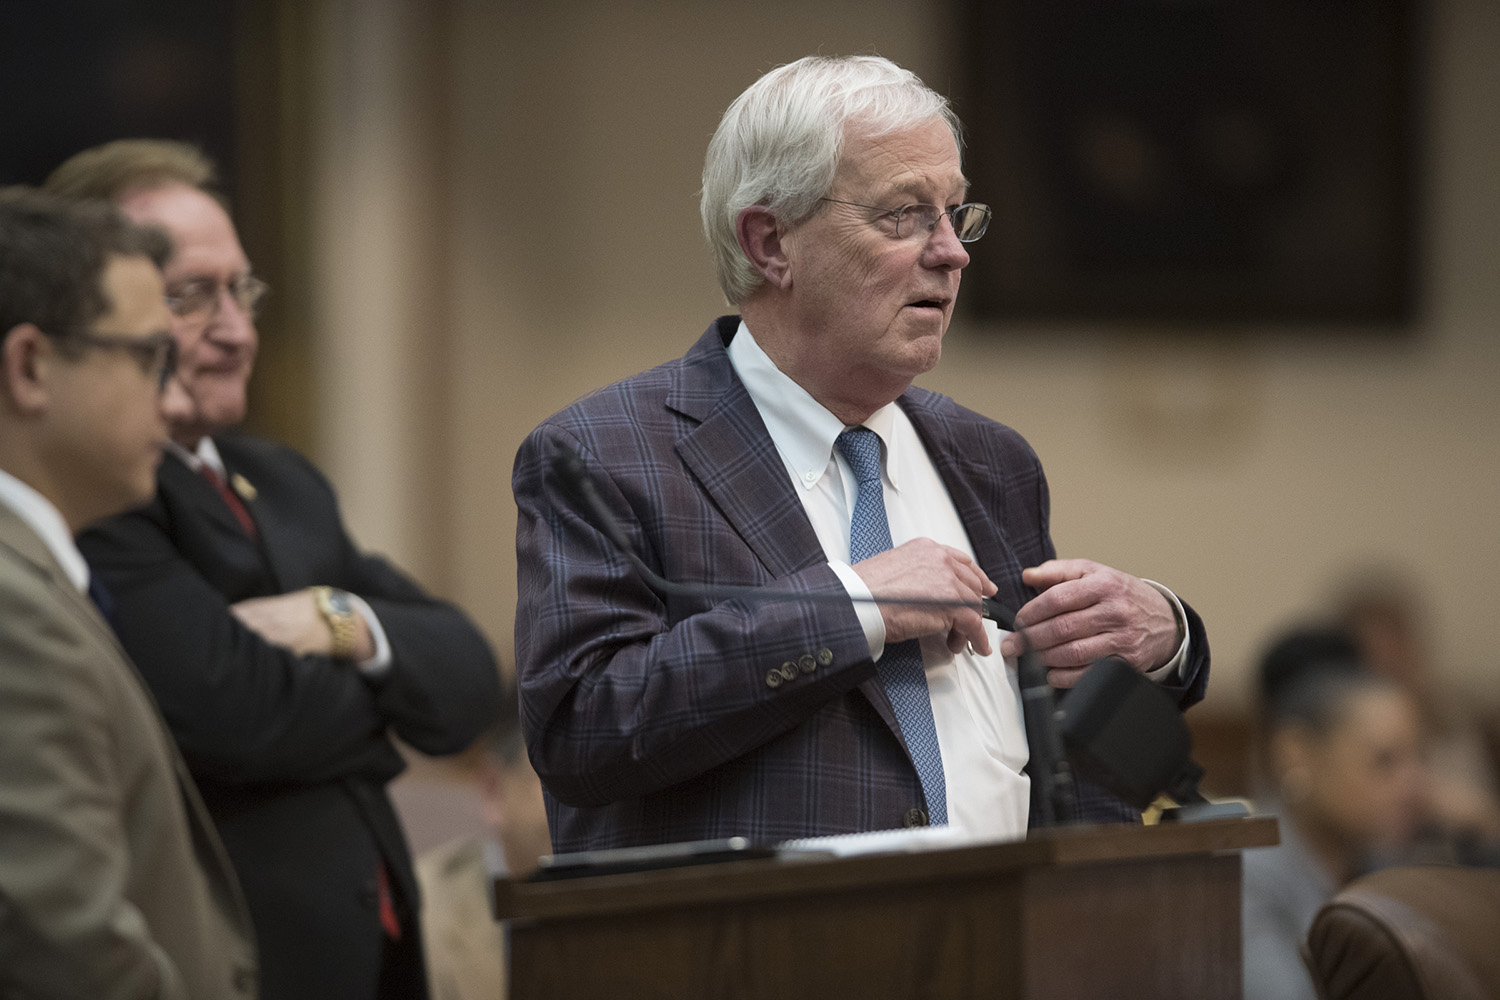 9:16 p.m. State Rep. Charlie Geren, R-Fort Worth, looks on as the House gets nearer its midnight deadline.